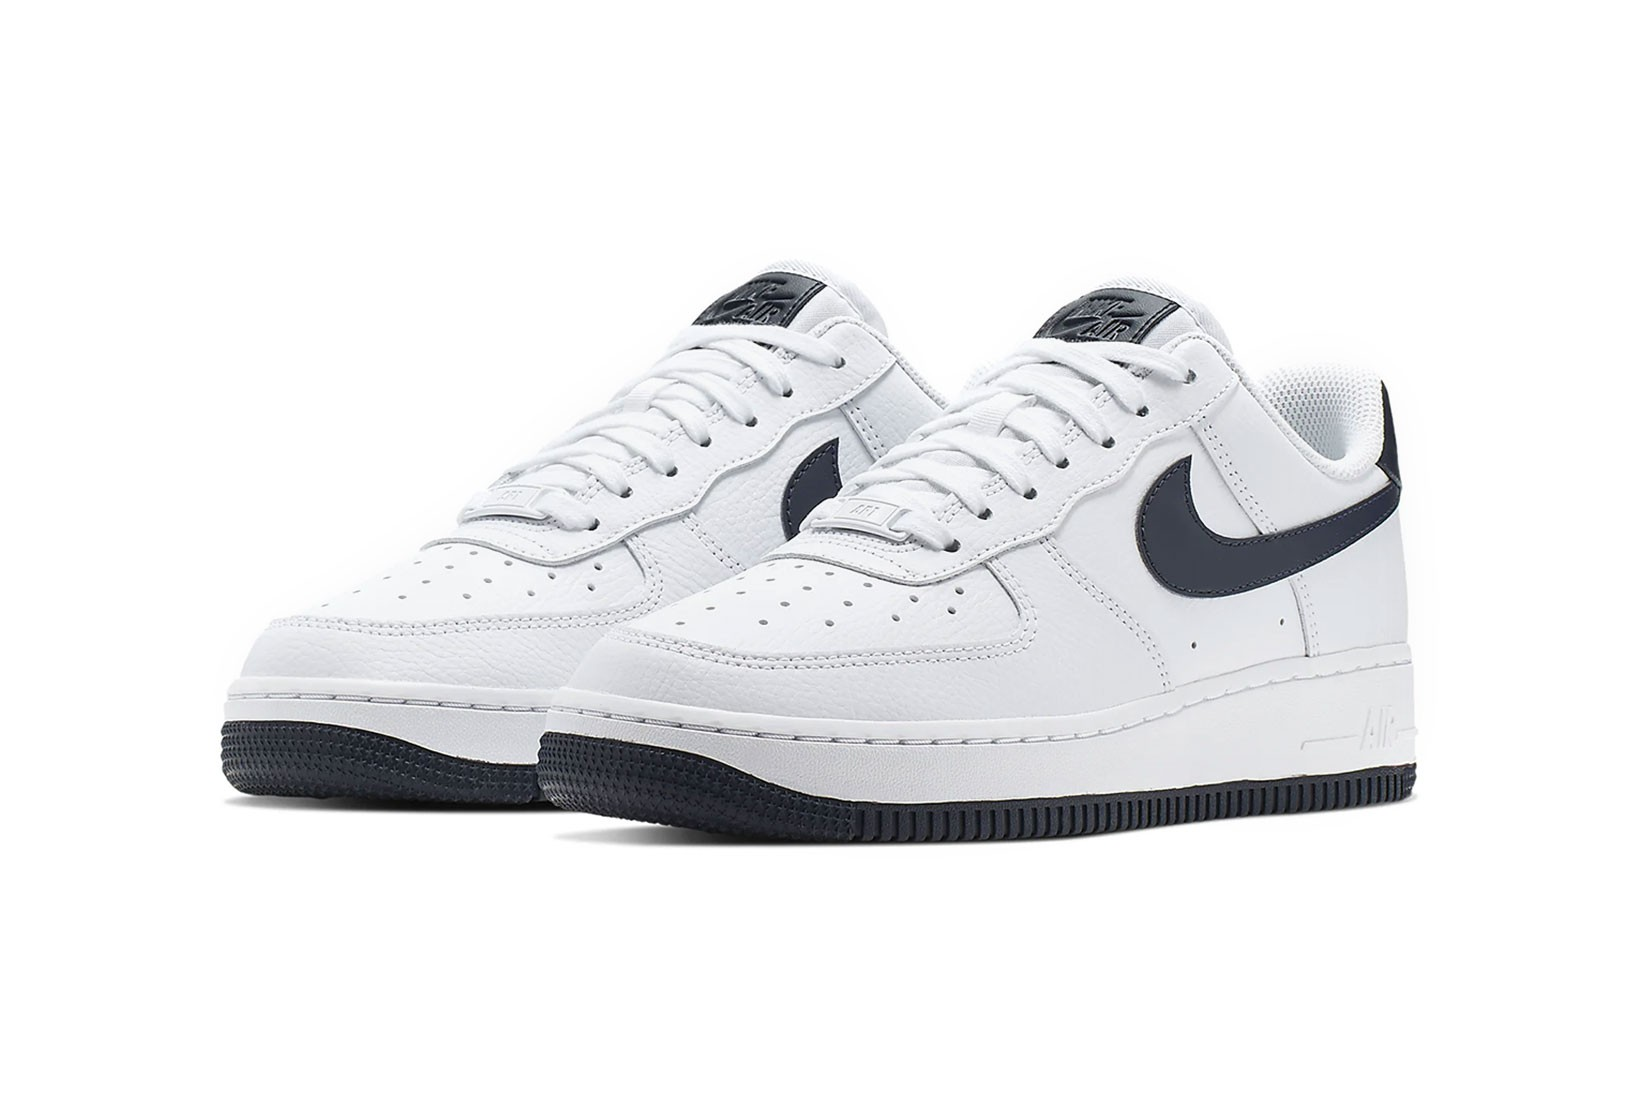 Nike's Air Force 1 '07 in Navy Blue